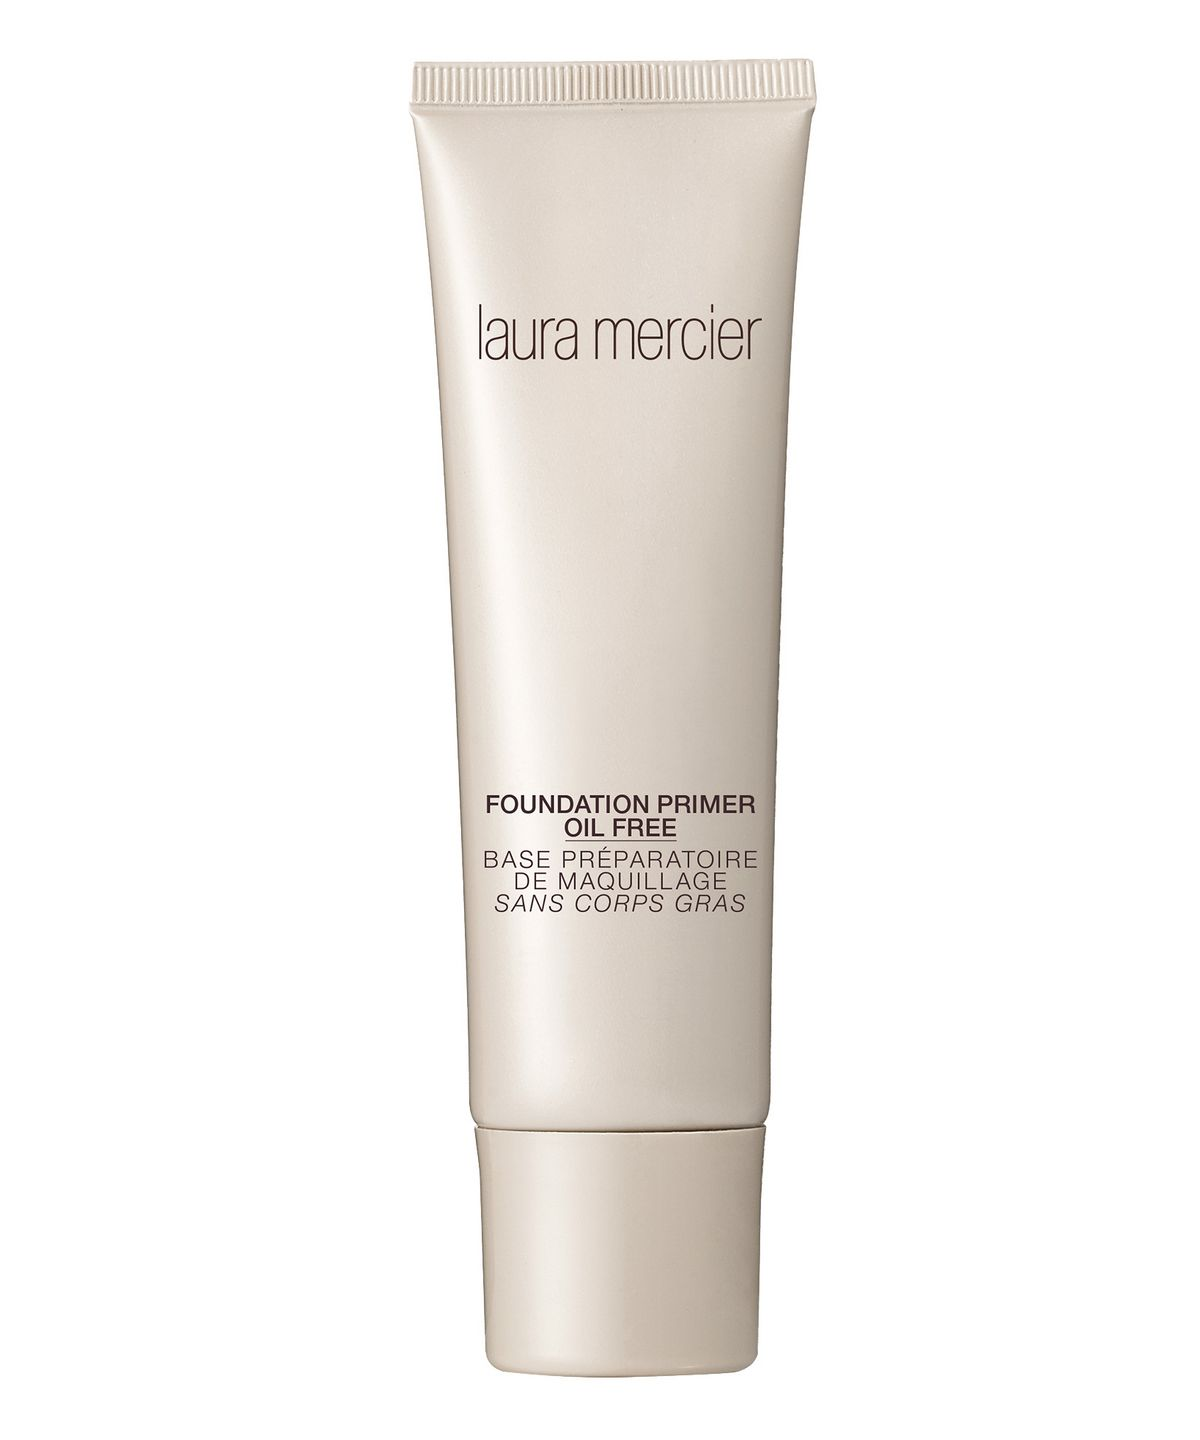 Laura Mercier - Oil-Free Primer 50 ml